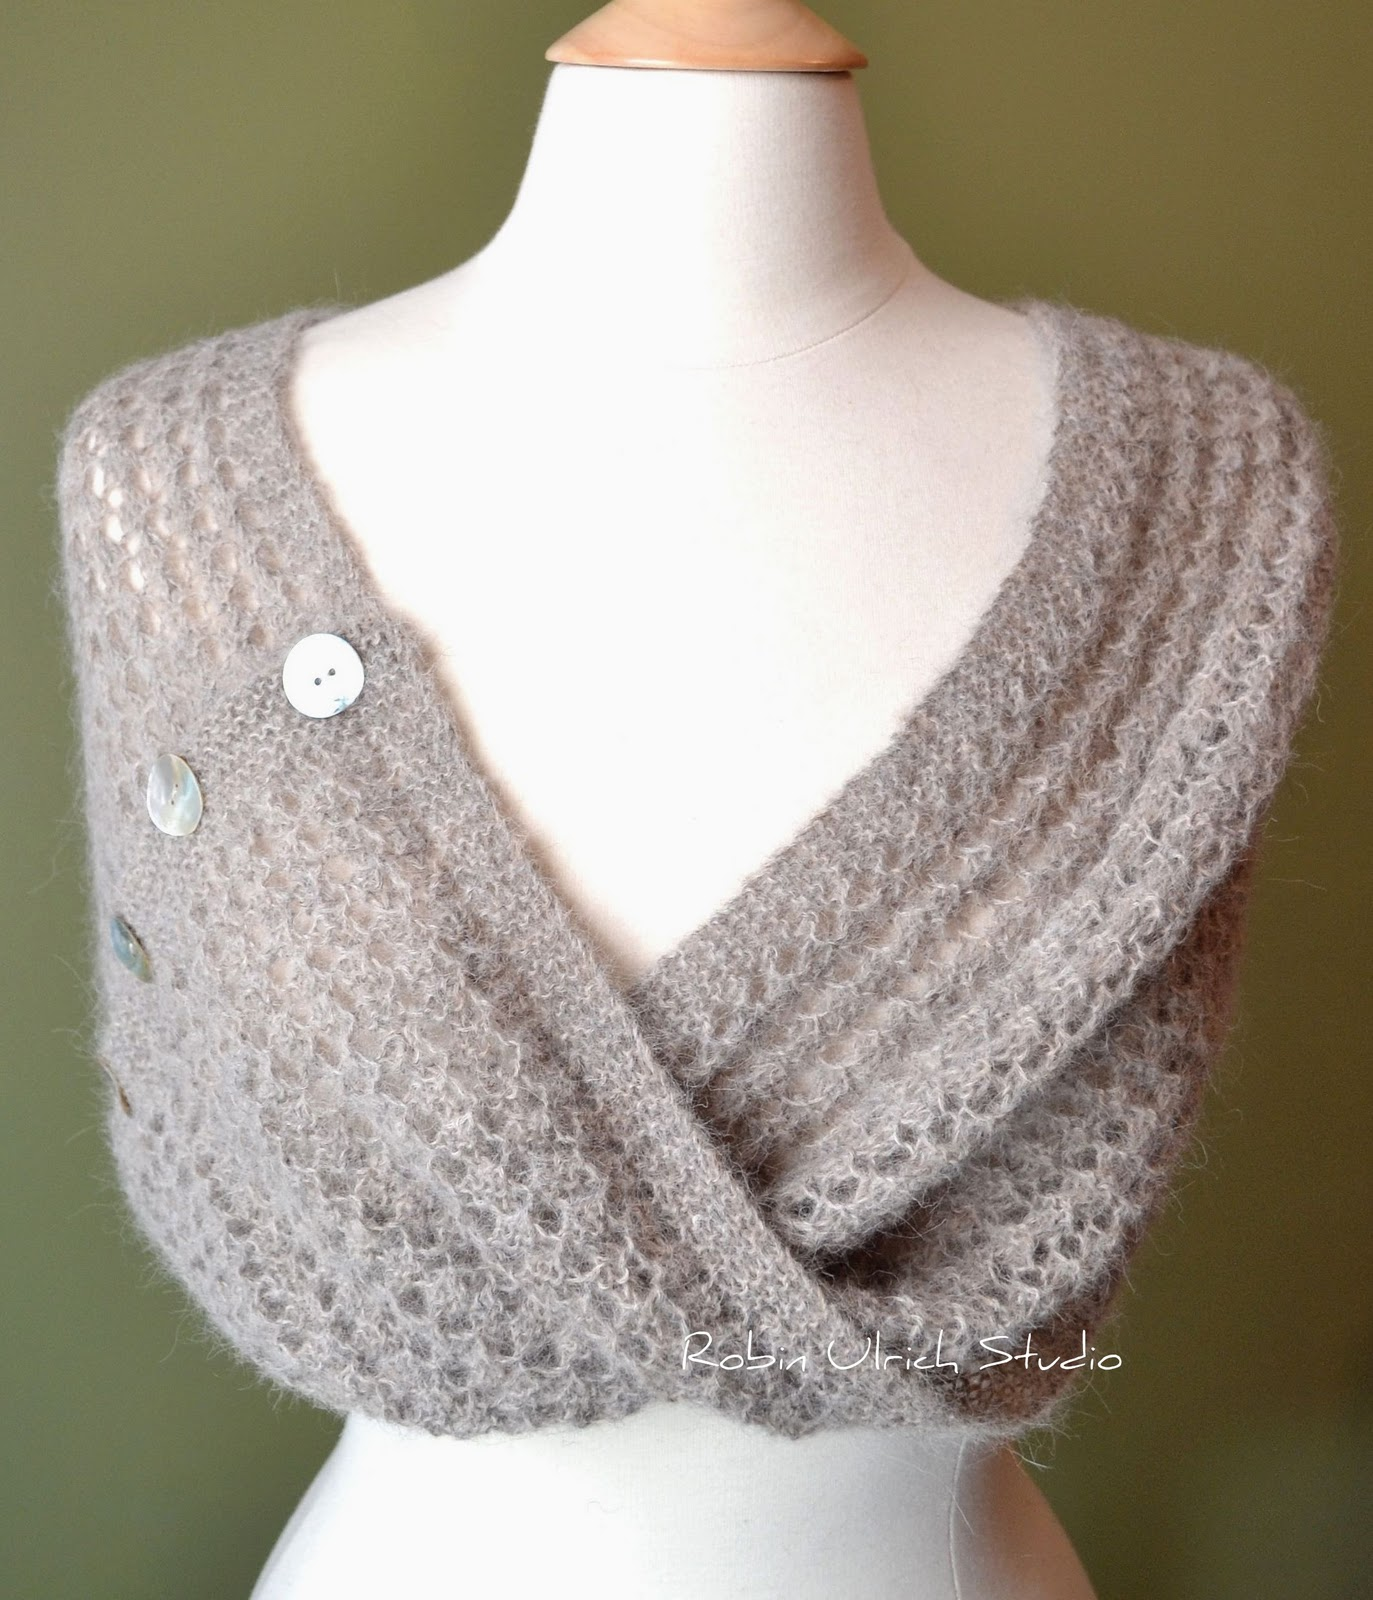 Robin Ulrich Studio: New Knitting Pattern - Lesia Loop